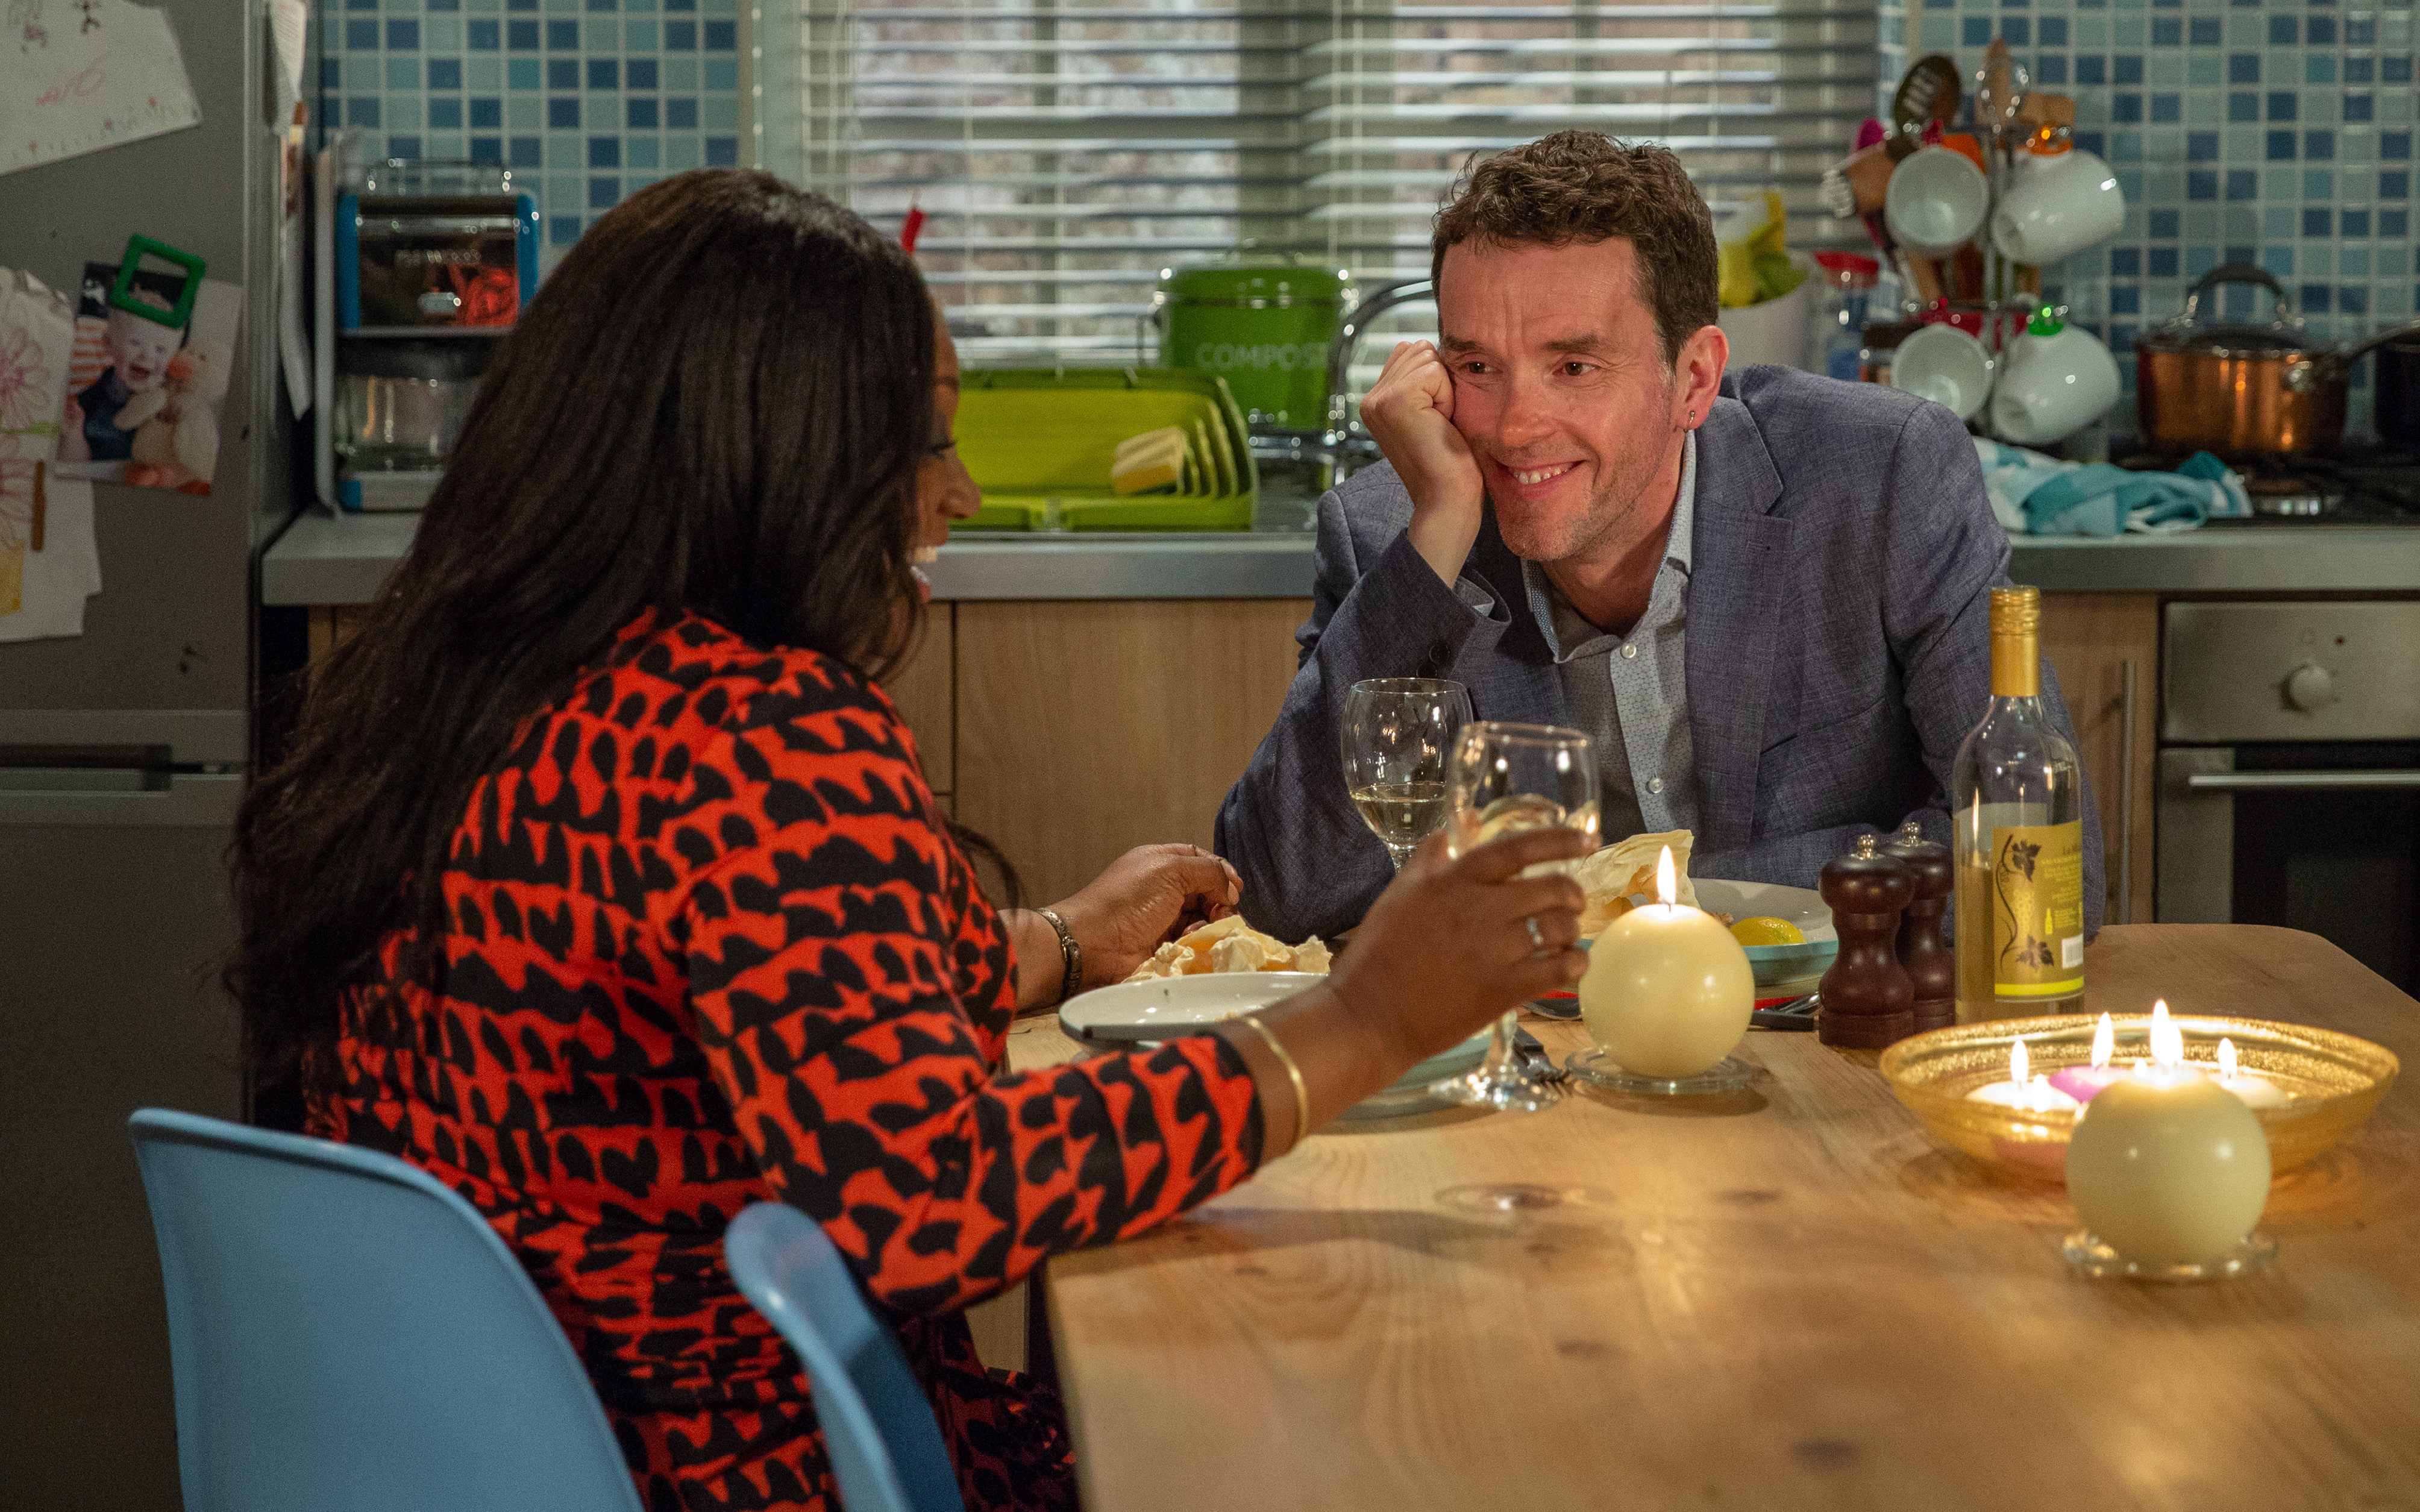 Emmerdale spoilers: April finds out about Marlon and Jessie's relationship